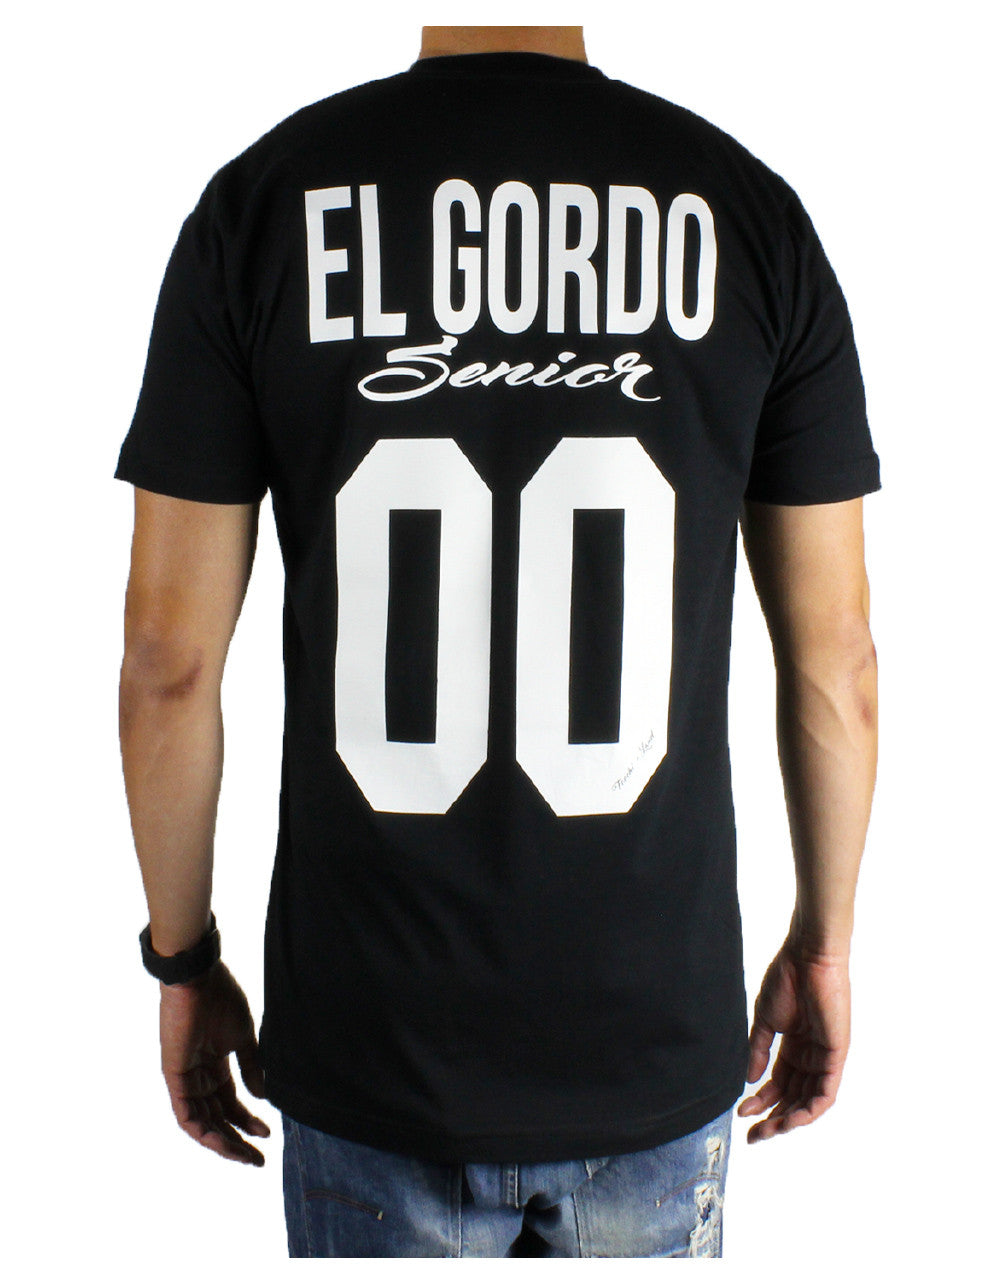 EL GORDO SENIOR ADULT